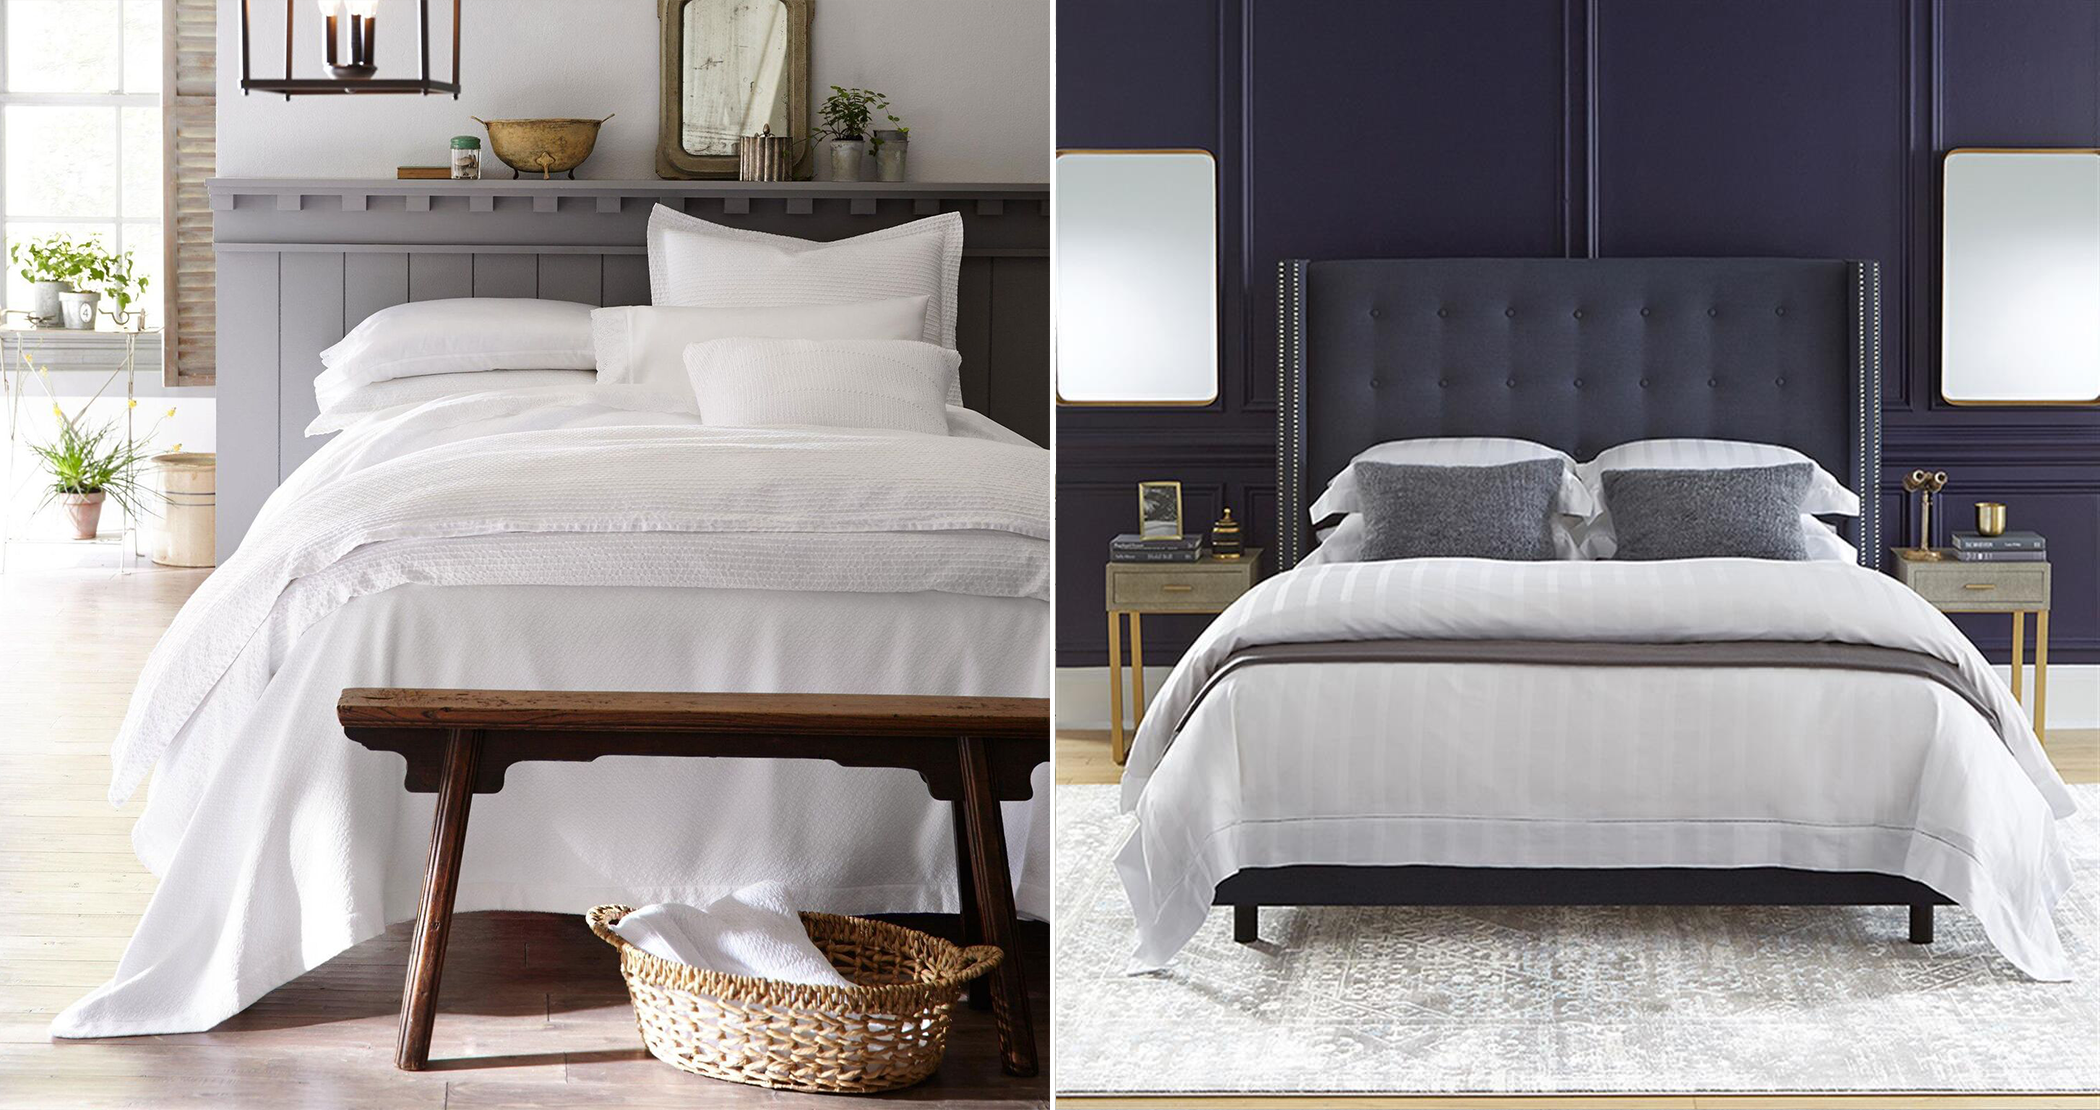 photo collage of chic white beds